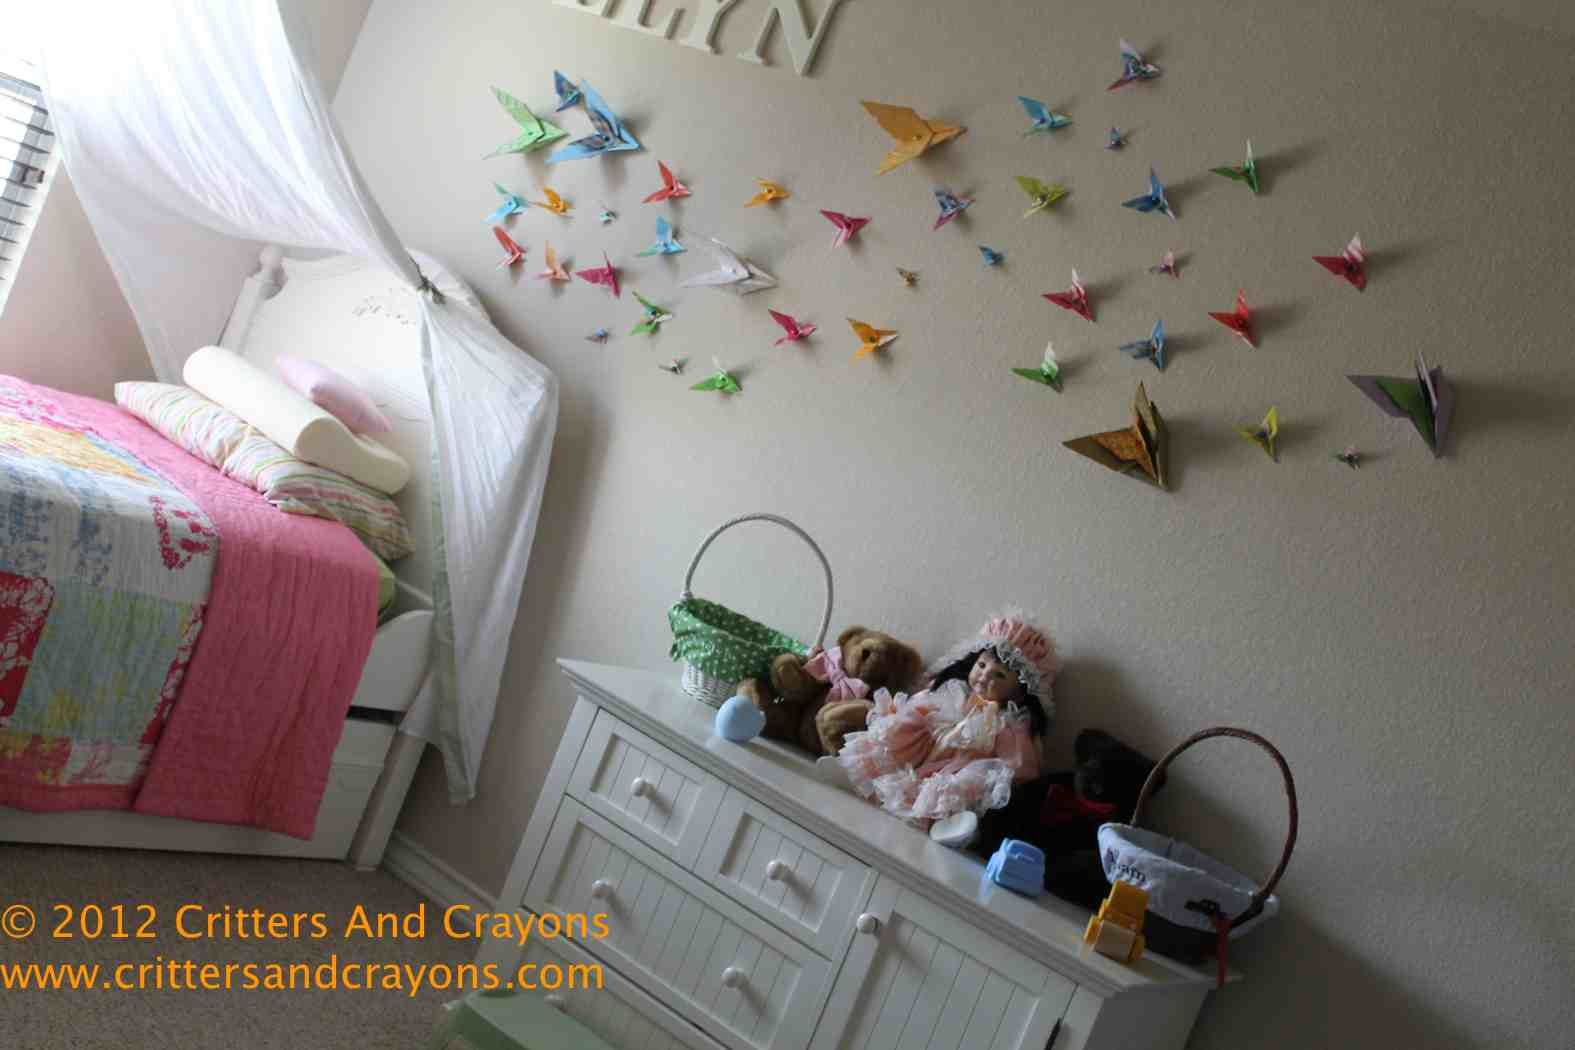 DIY Girlu0027s Room Decor: Butterfly Origami Migration